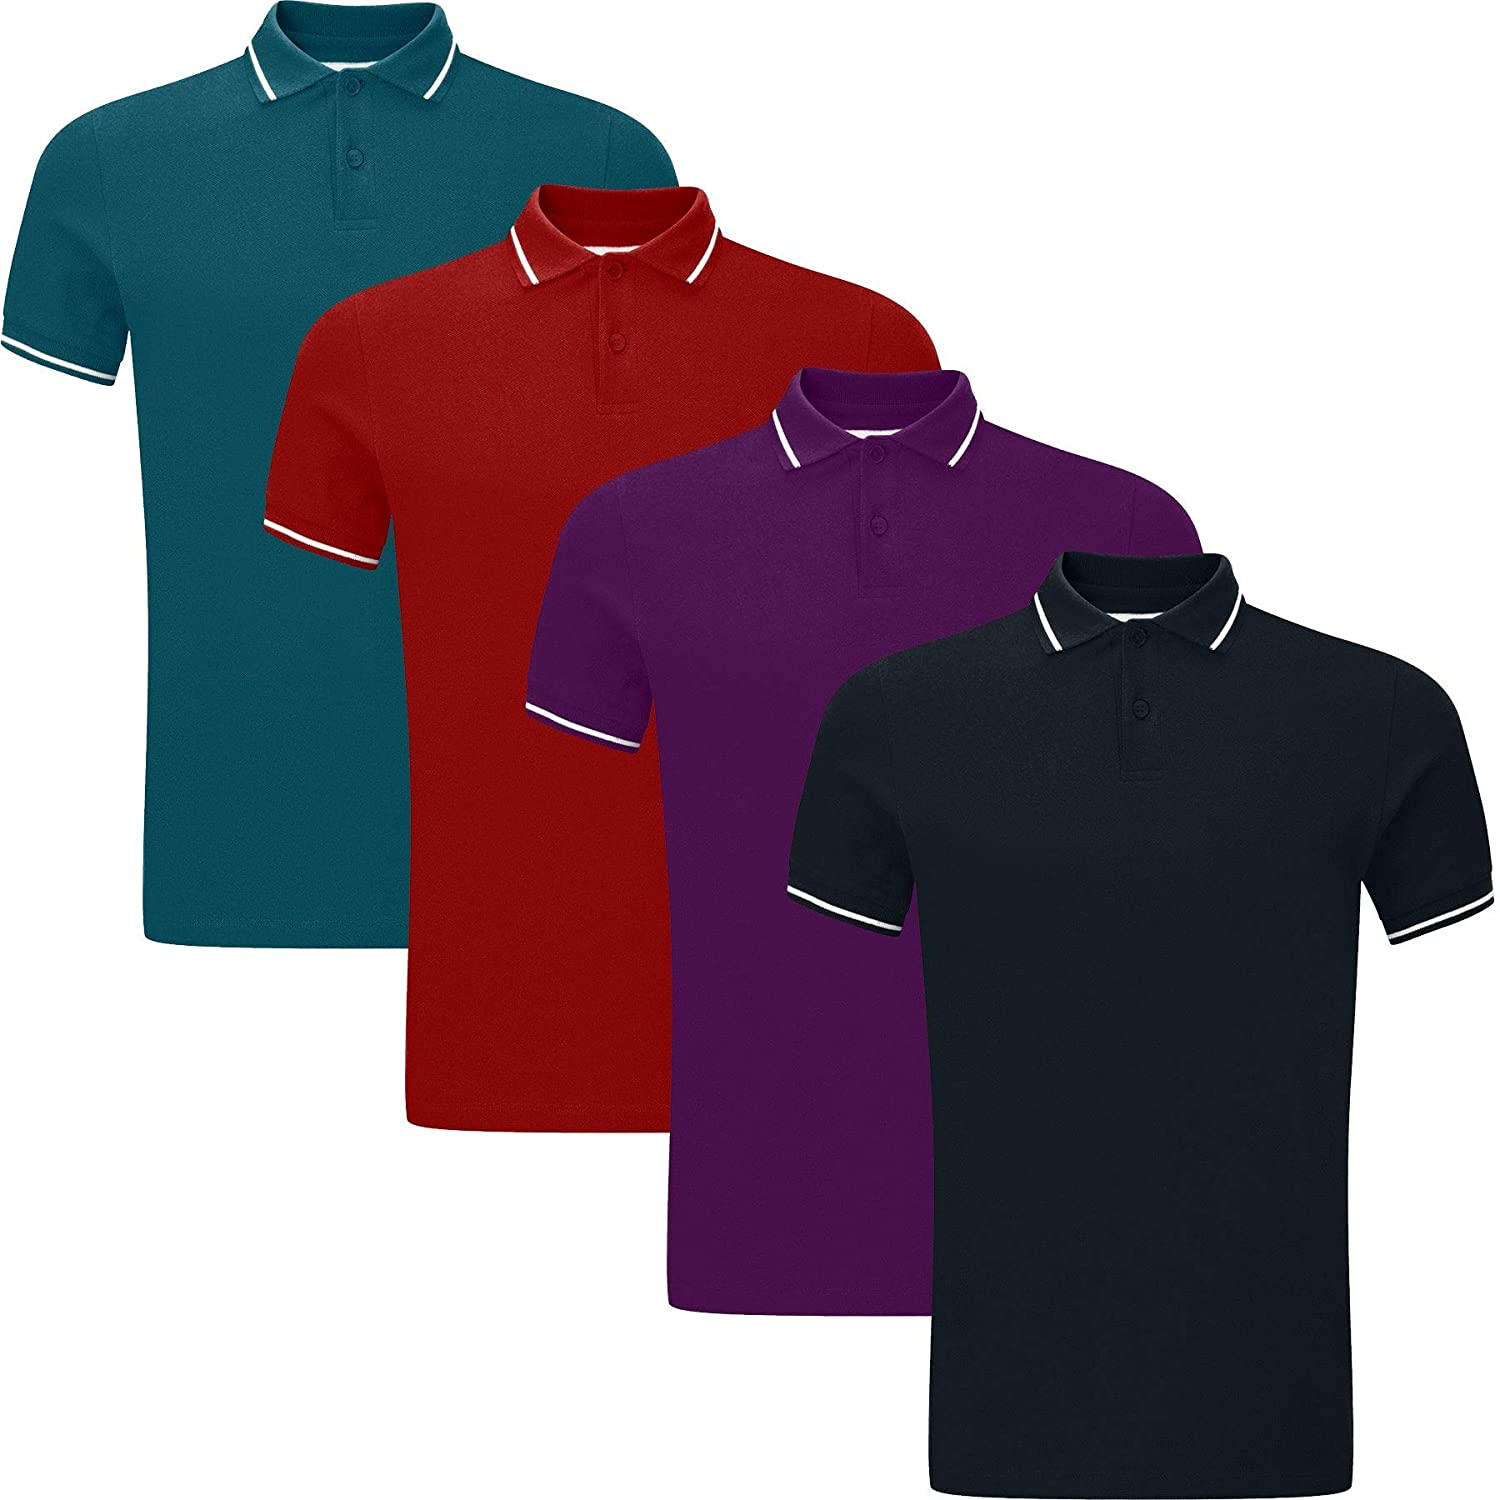 f9010e51 Best Mens Designer Polo Shirts - Aztec Stone and Reclamations